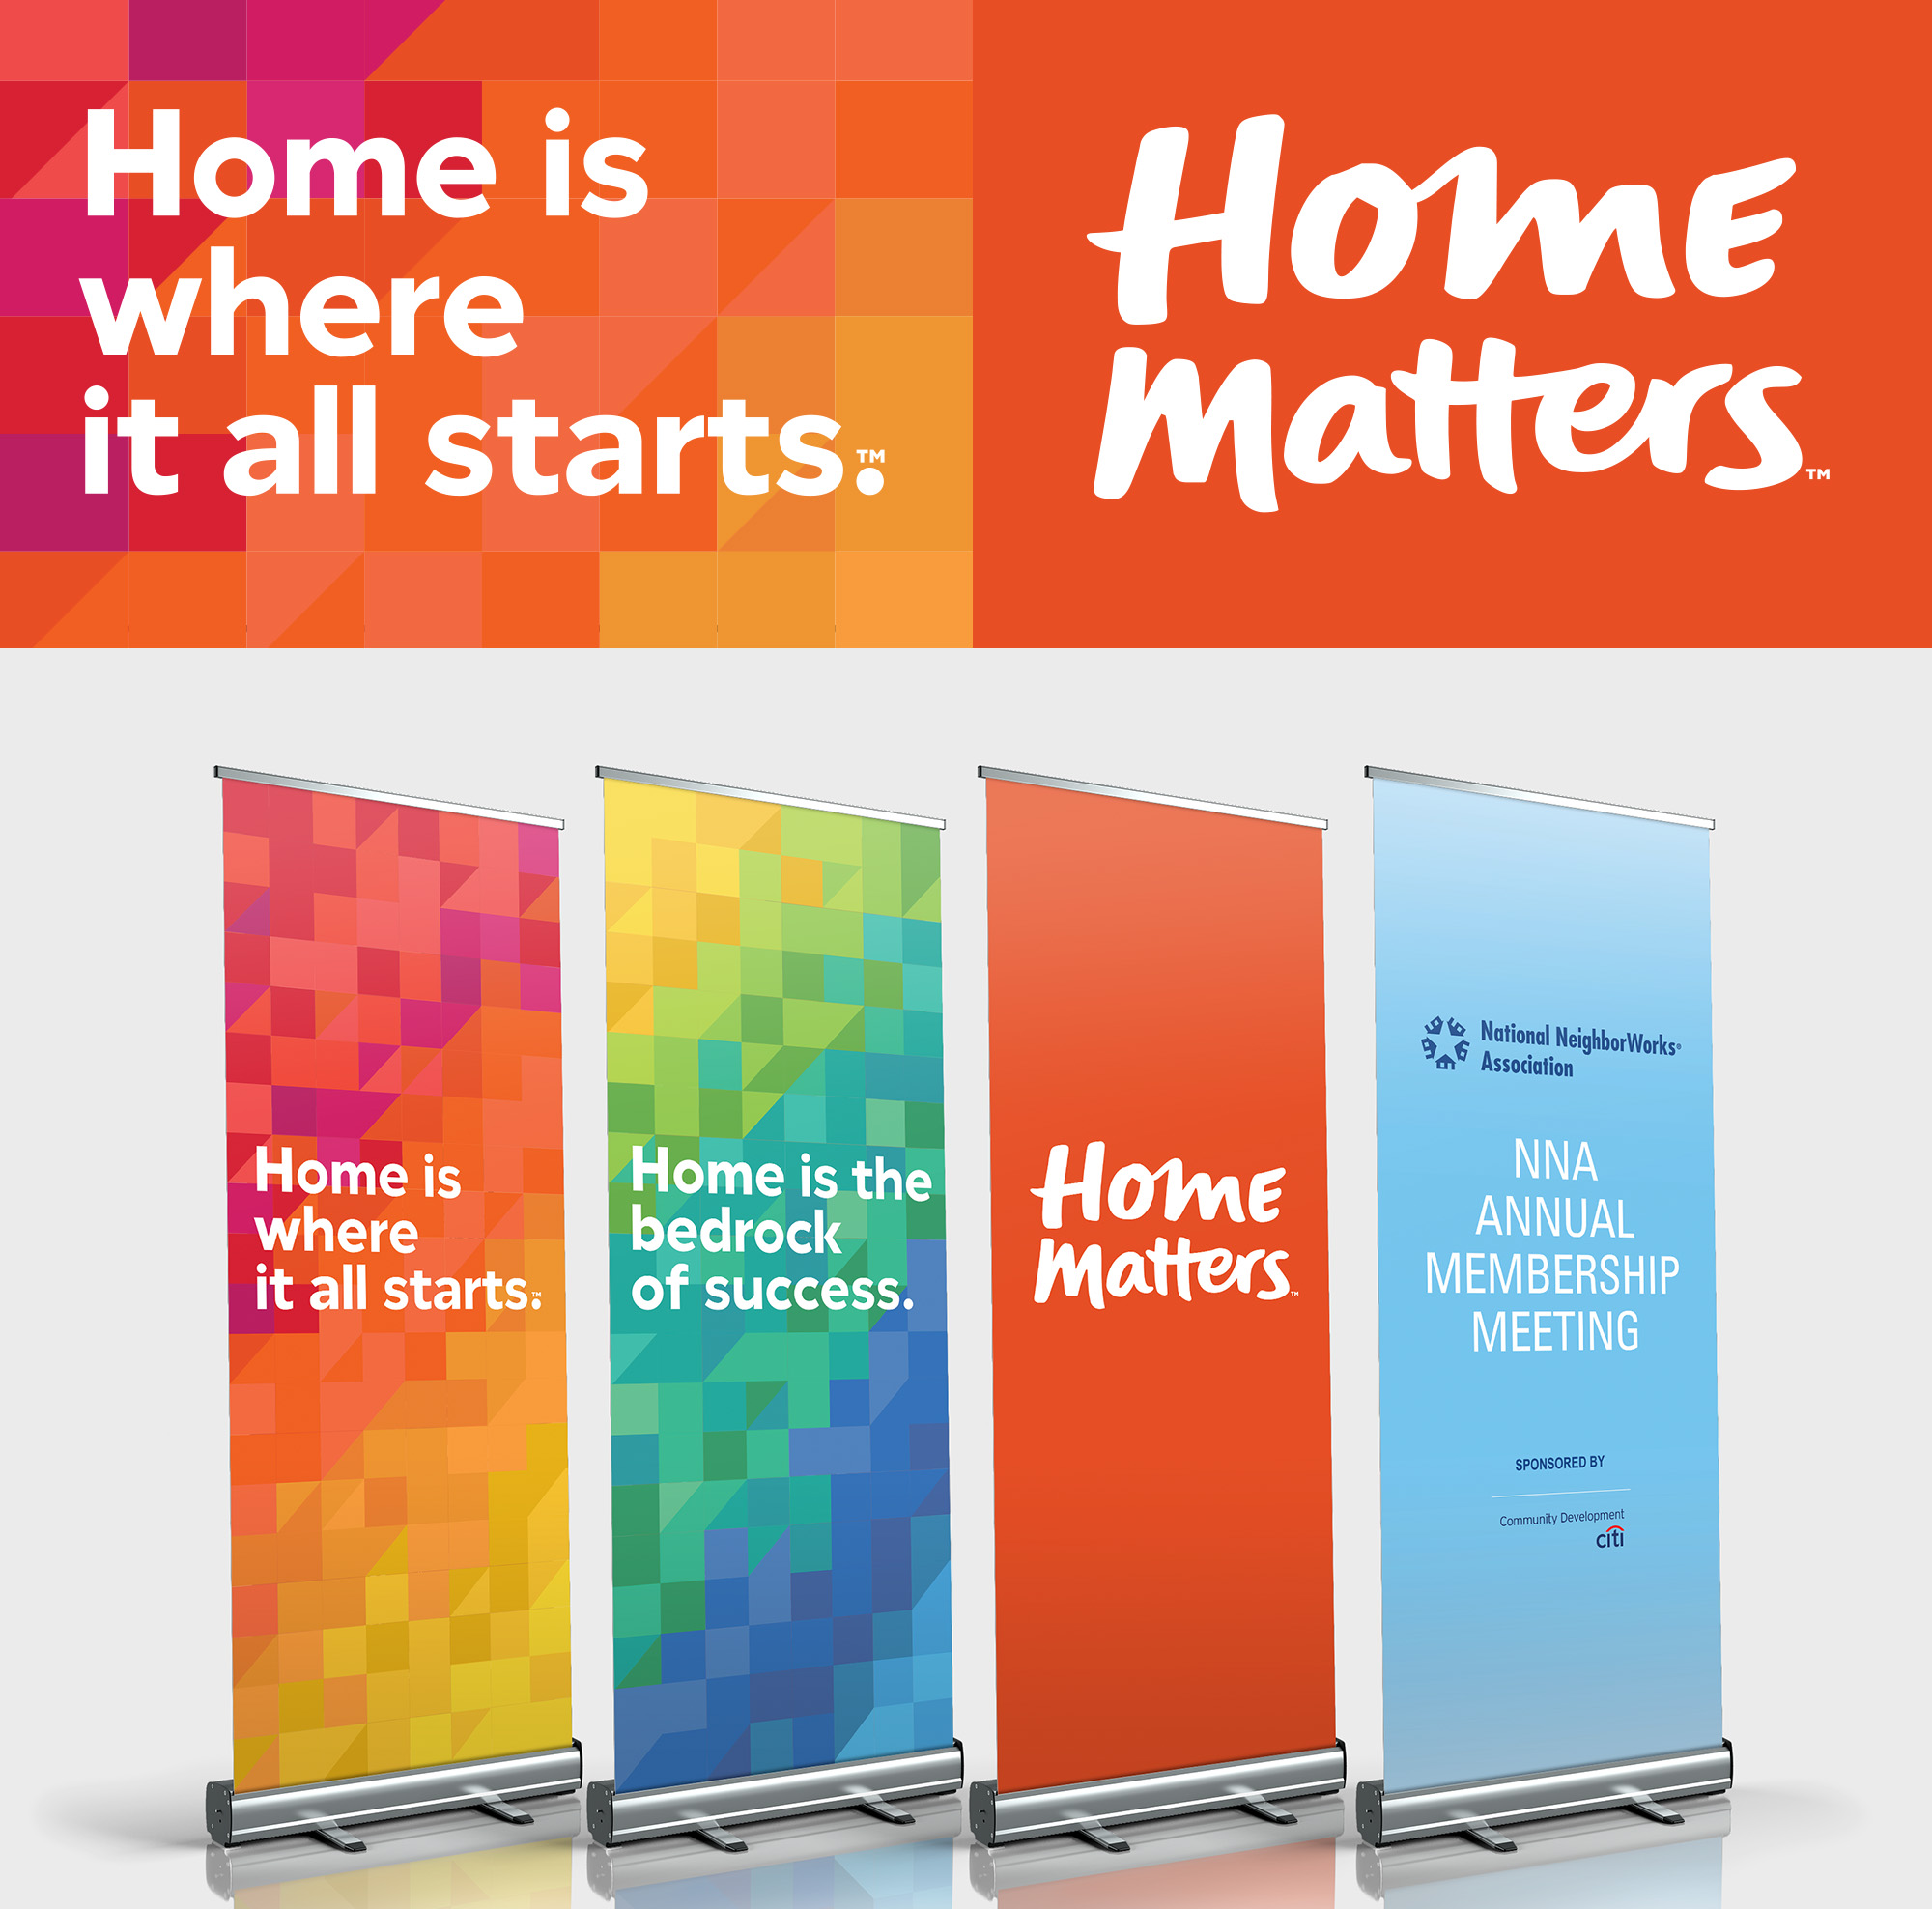 Home Matters banners